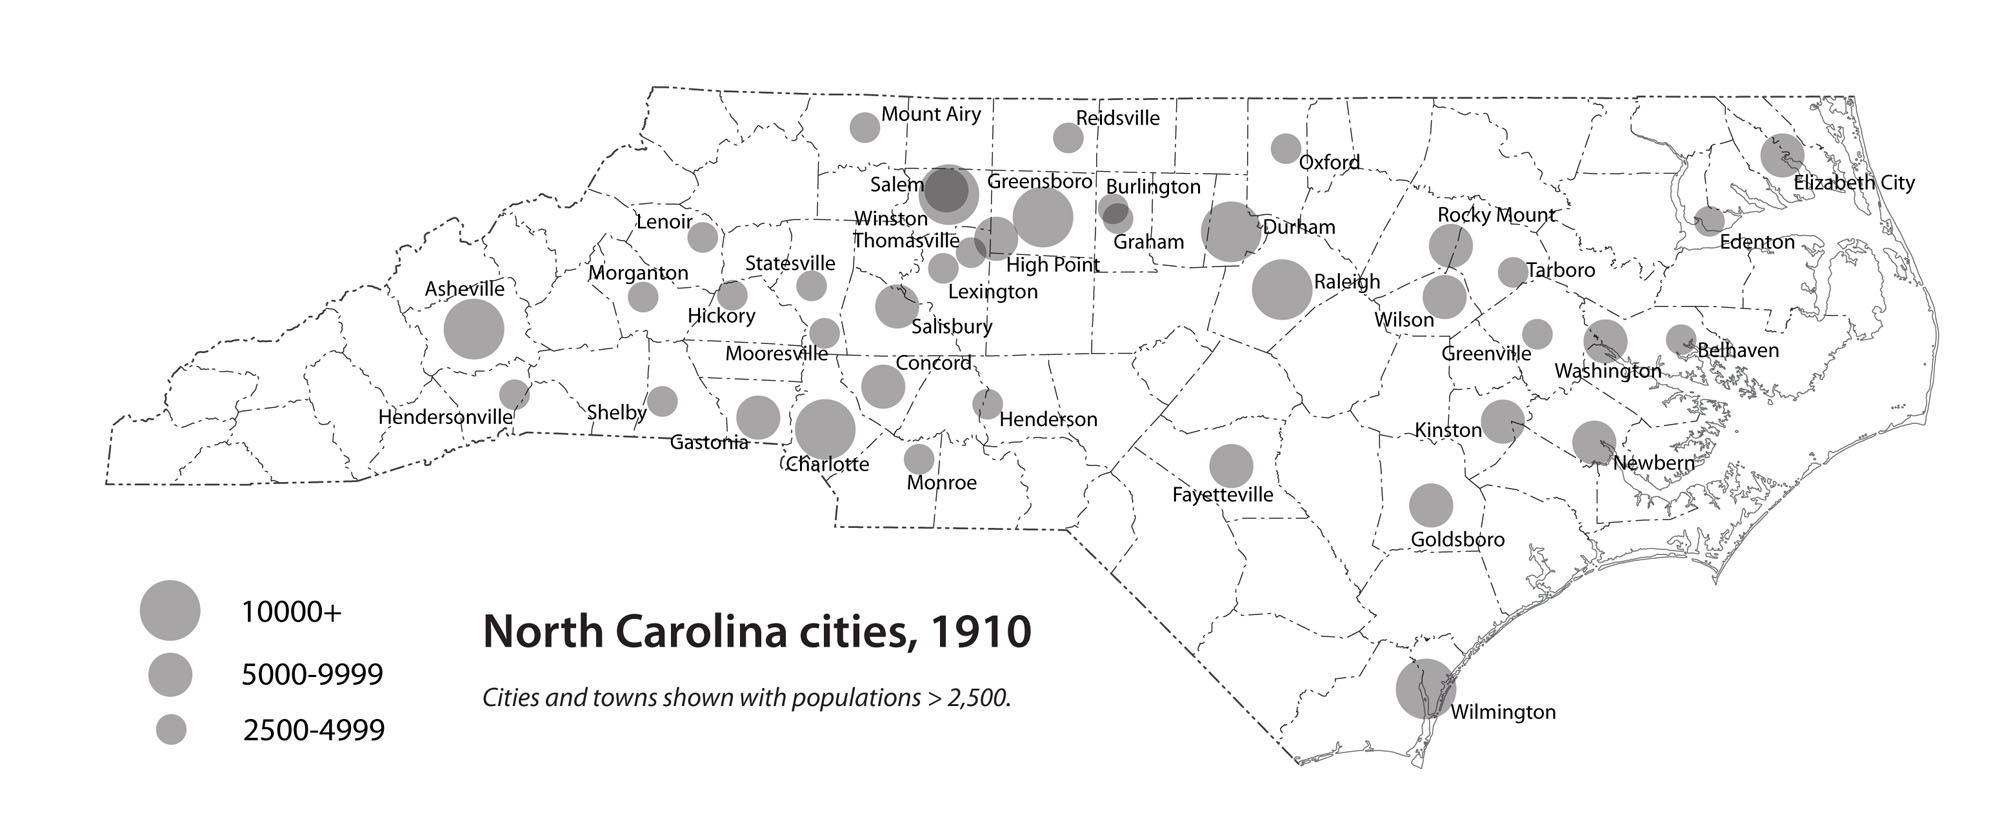 North Carolina cities, 1910